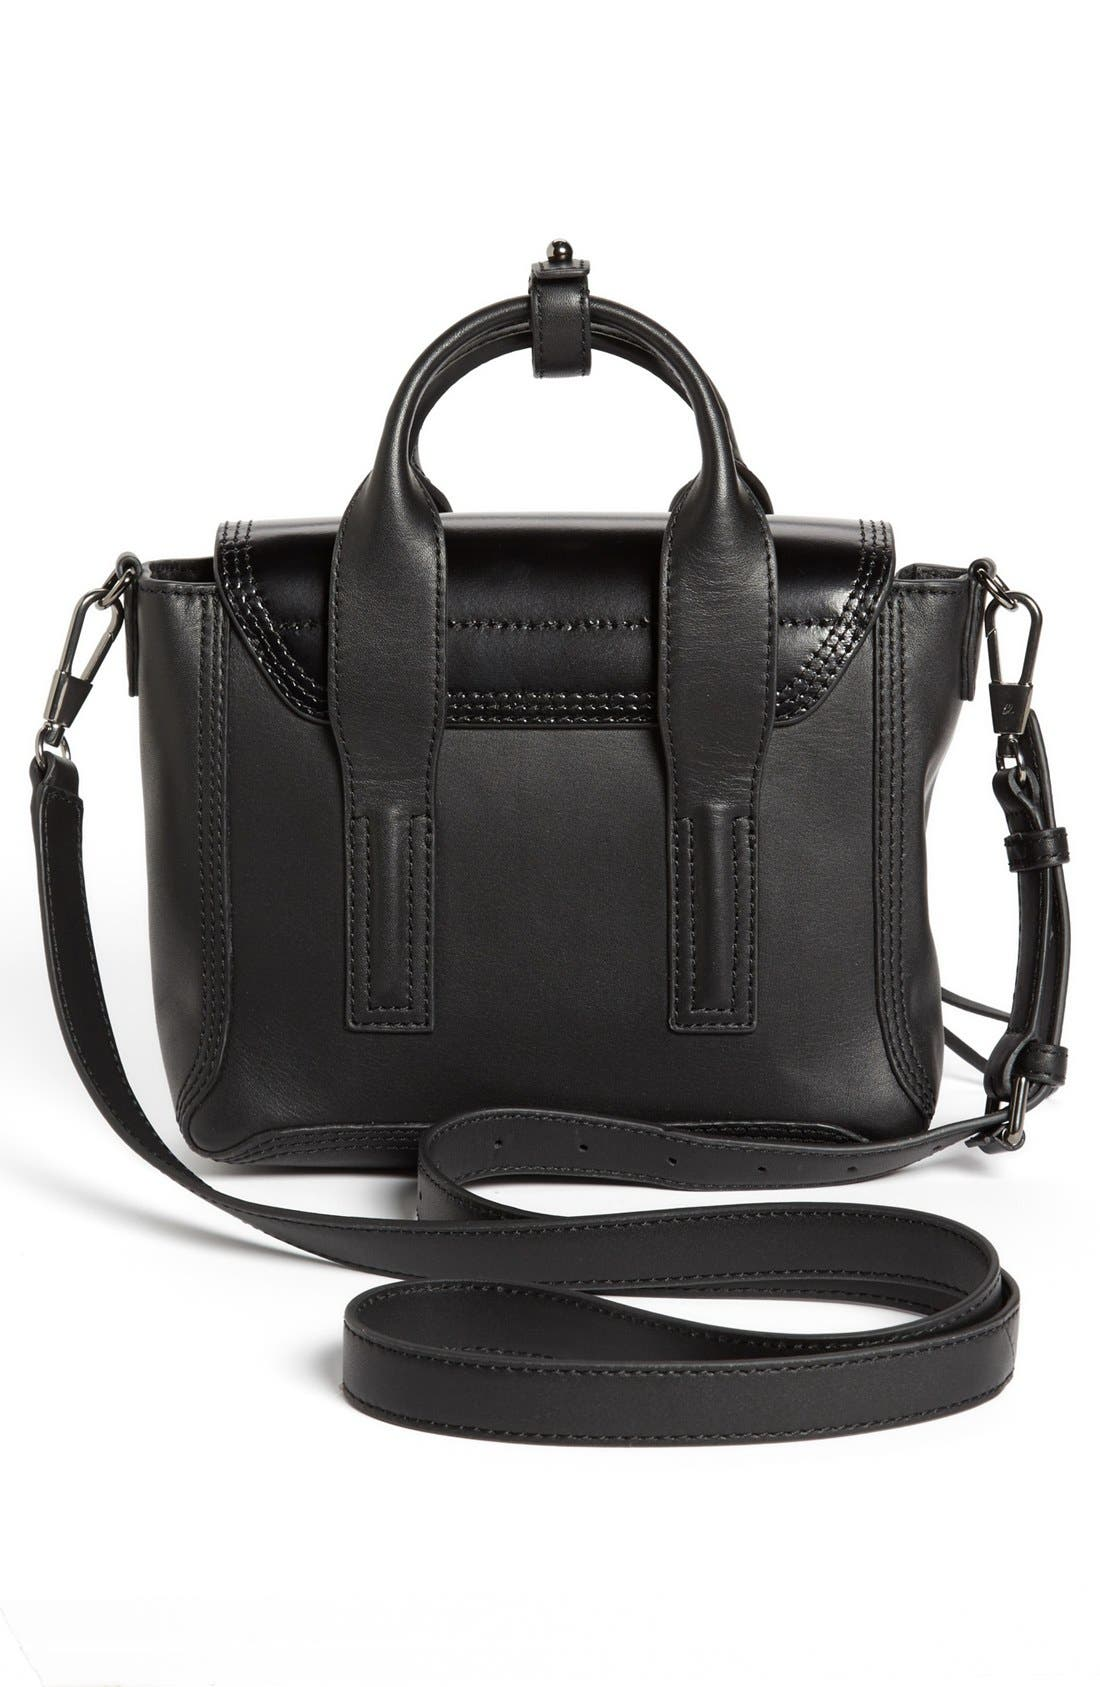 Alternate Image 3  - 3.1 Phillip Lim 'Pashli Mini' Glitter Satchel